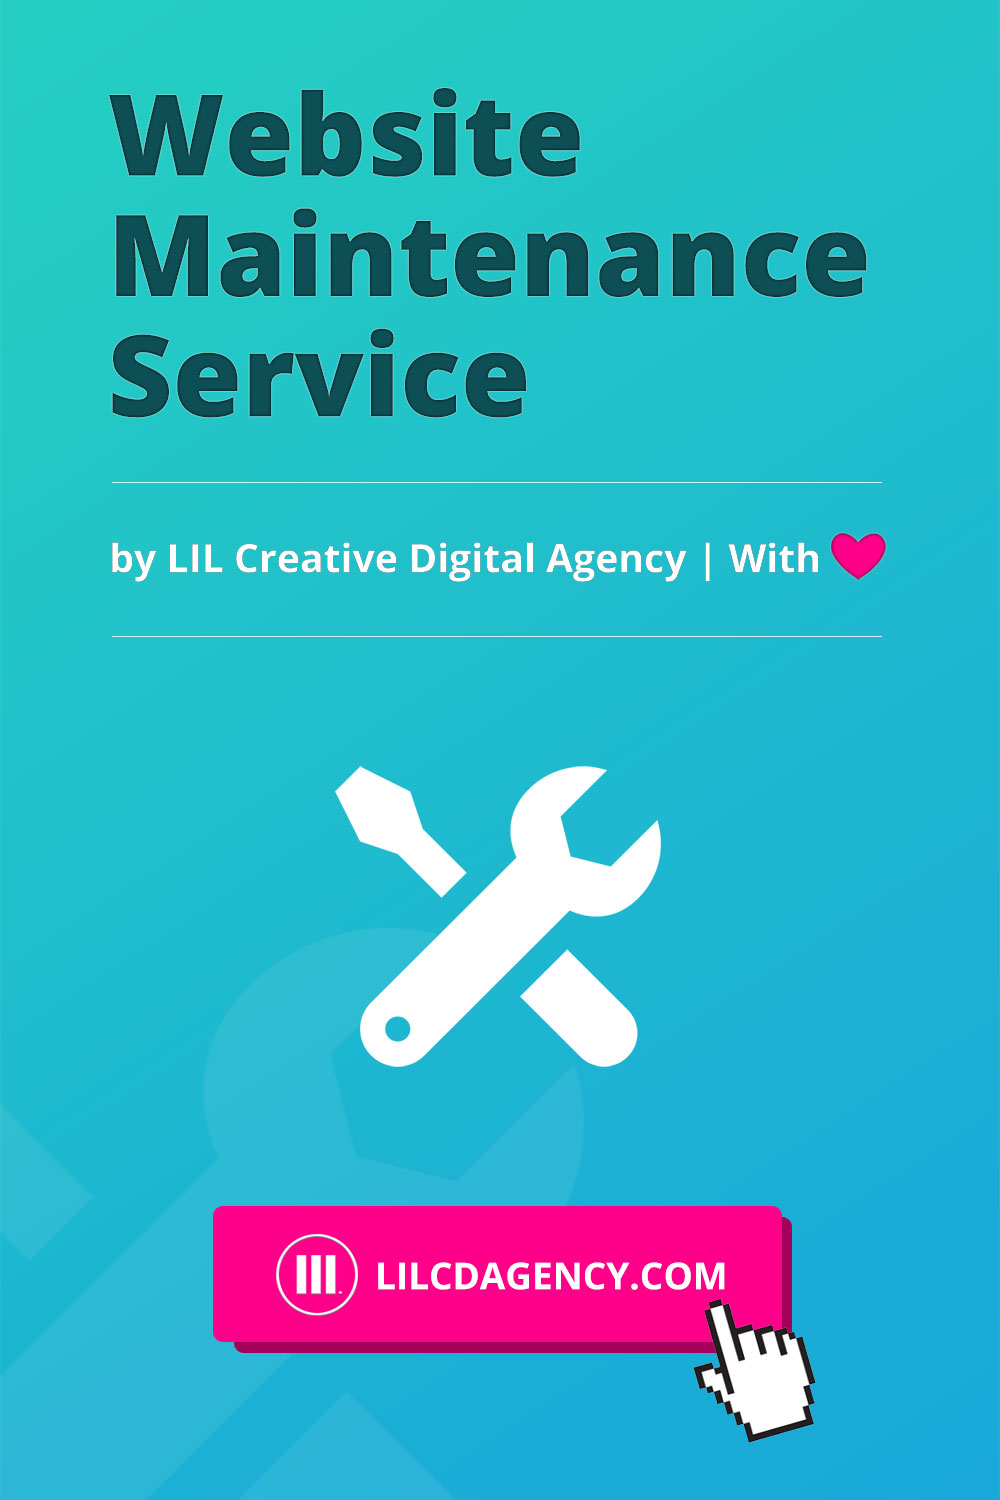 Website Maintenance Service by LIL Creative Digital Agency